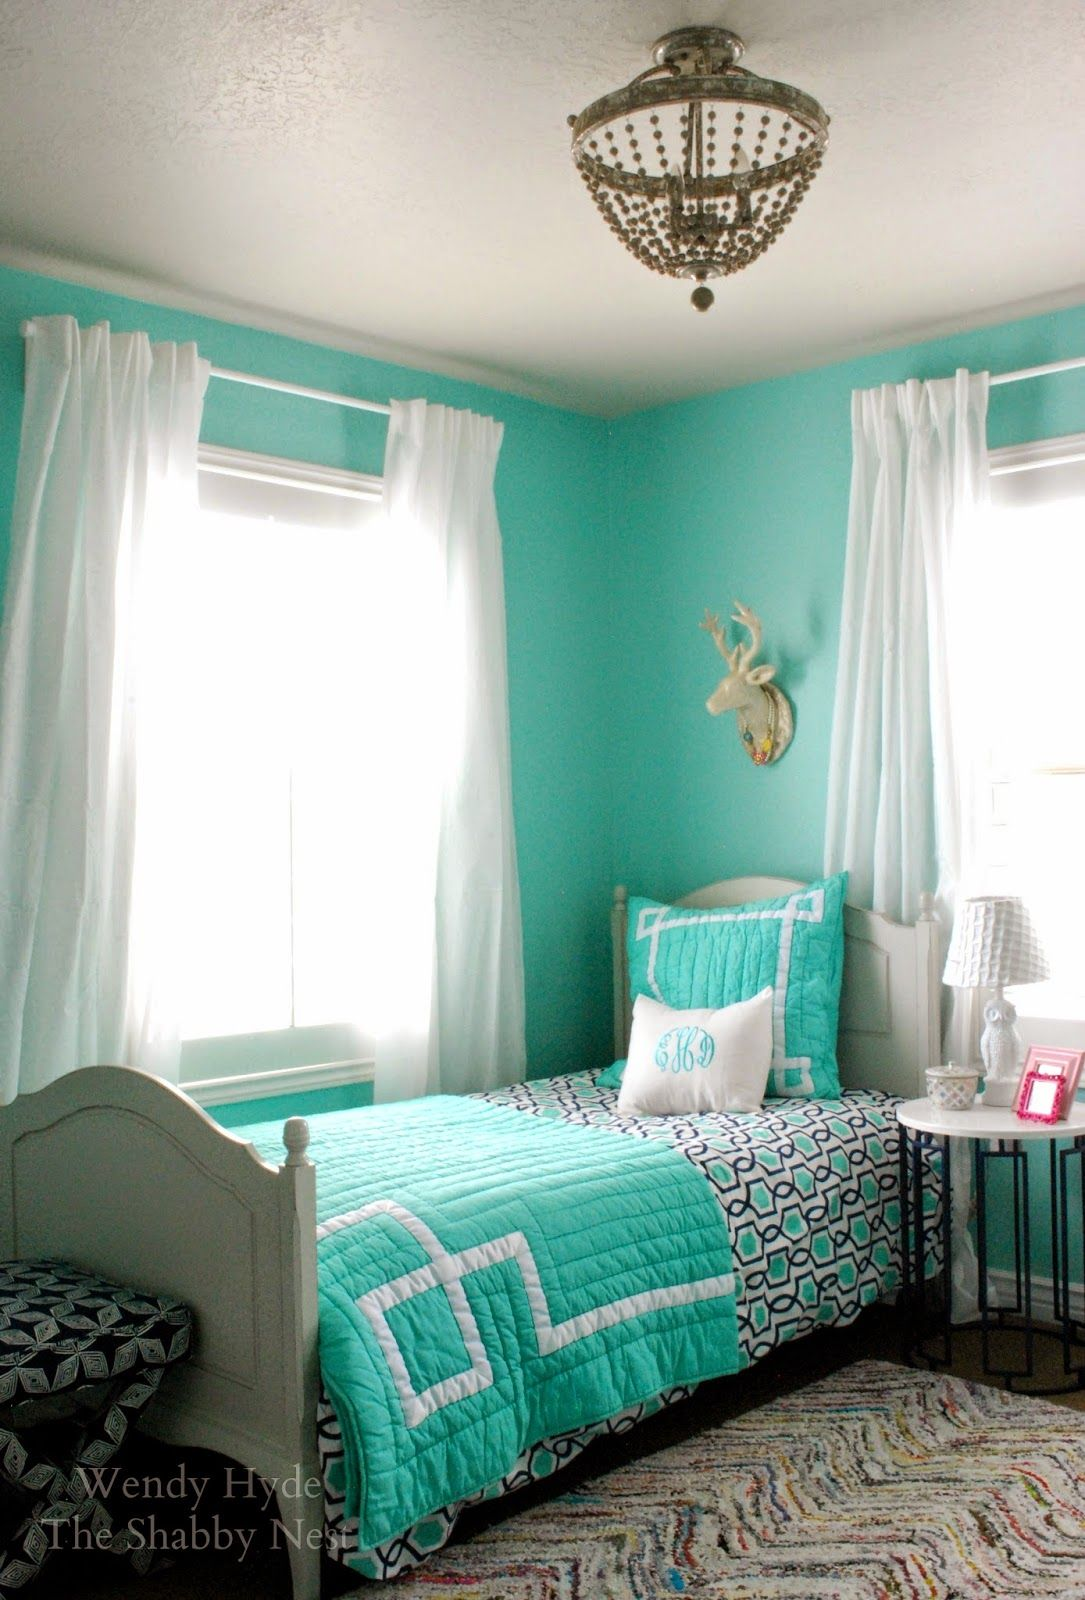 delightful Nice Bedroom Ideas For Adults Part - 8: turquoise bedroom for teens #turquoise (turquoise bedroom ideas) Tags:  turquoise bedroom ideas+for adults+room decor, turquoise bedroom rustic, ...